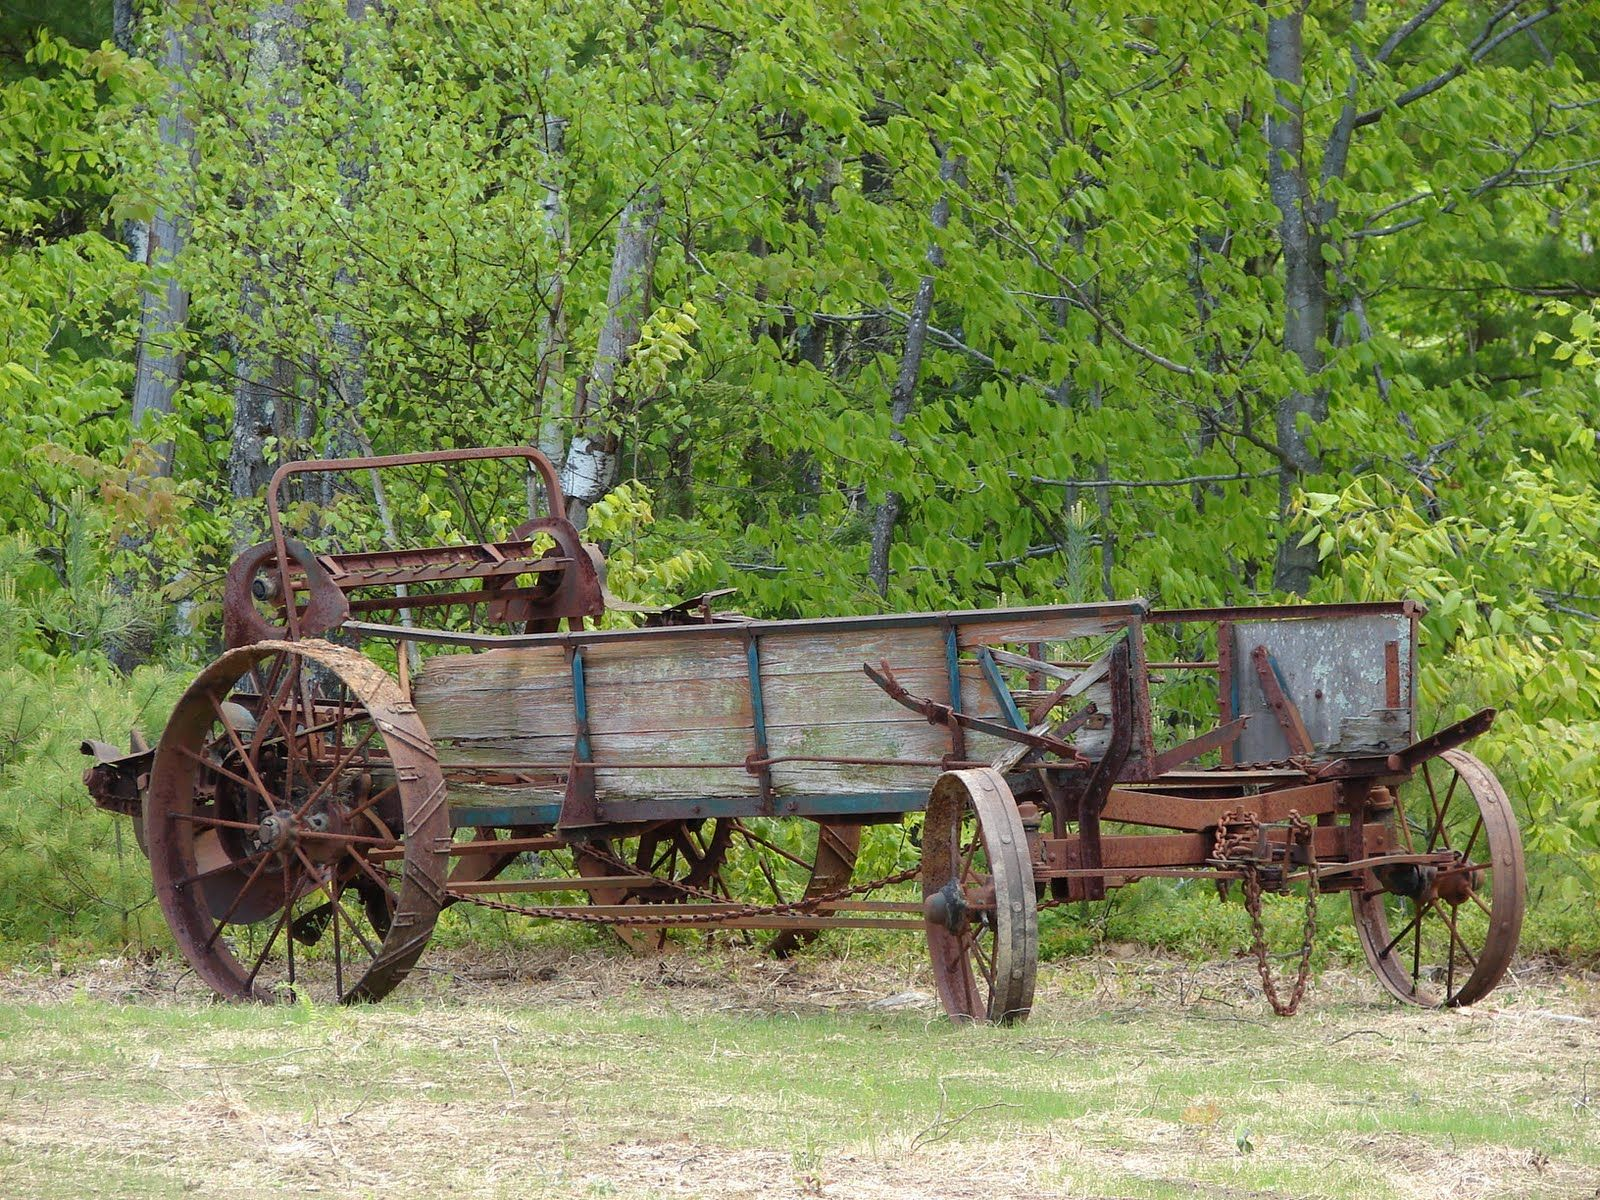 Dh S Love Of Old Farm Implements Old Farm Equipment Old Farm Old Tractors